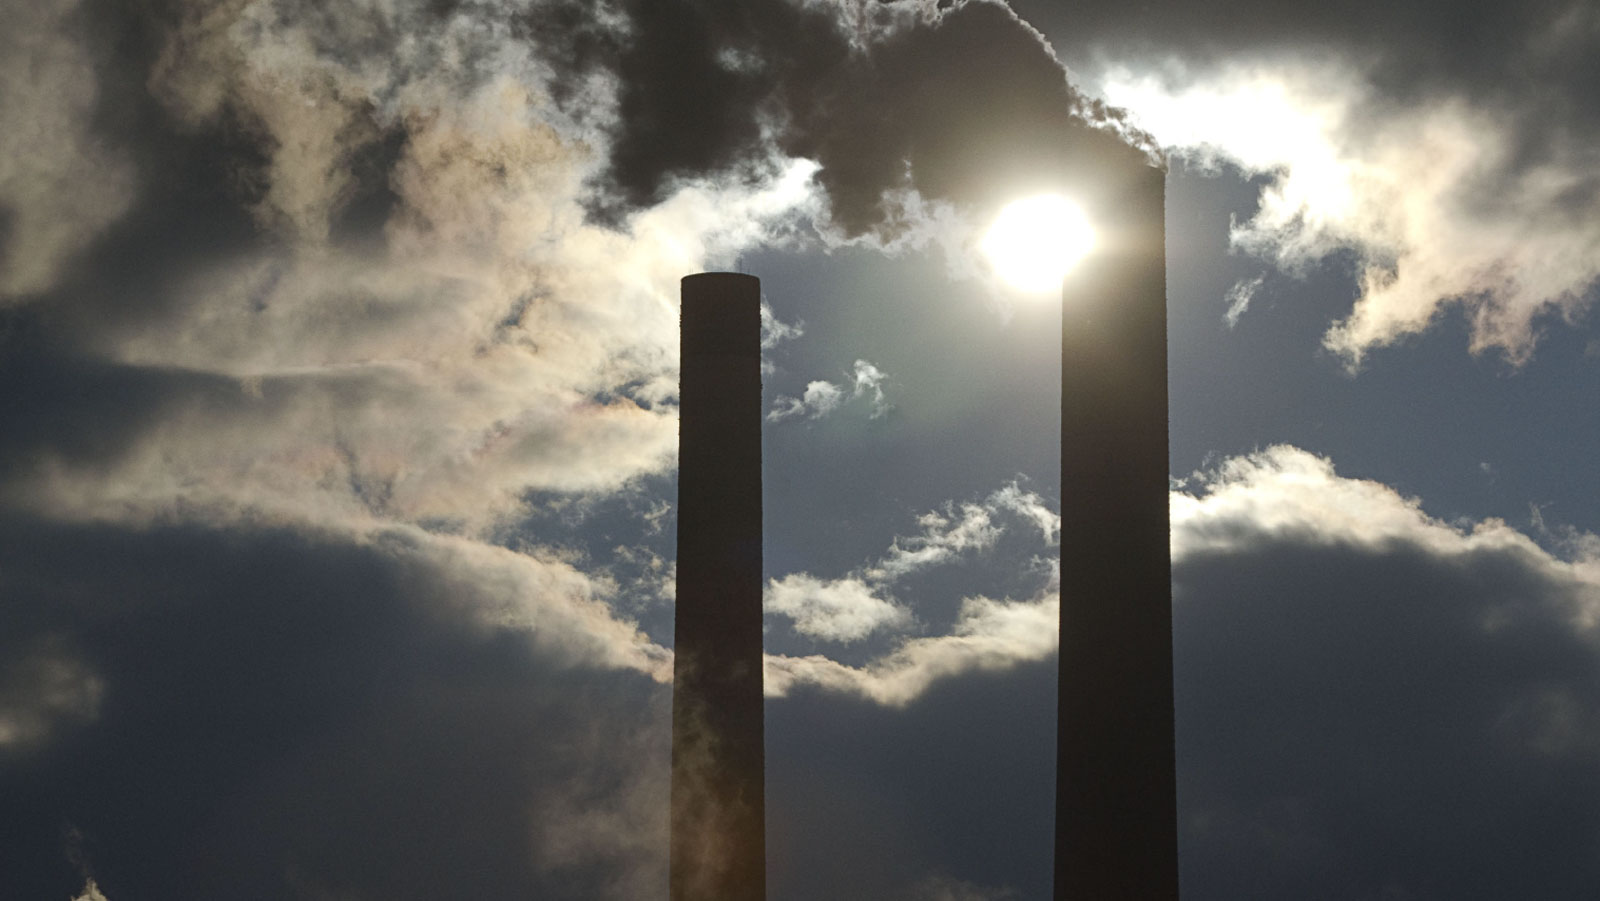 <h4>Fueling the climate crisis</h4><p>If left unchecked fossil fuel energy infrastructure could add more than 650 billion tons of carbon dioxide to the atmosphere.</p>